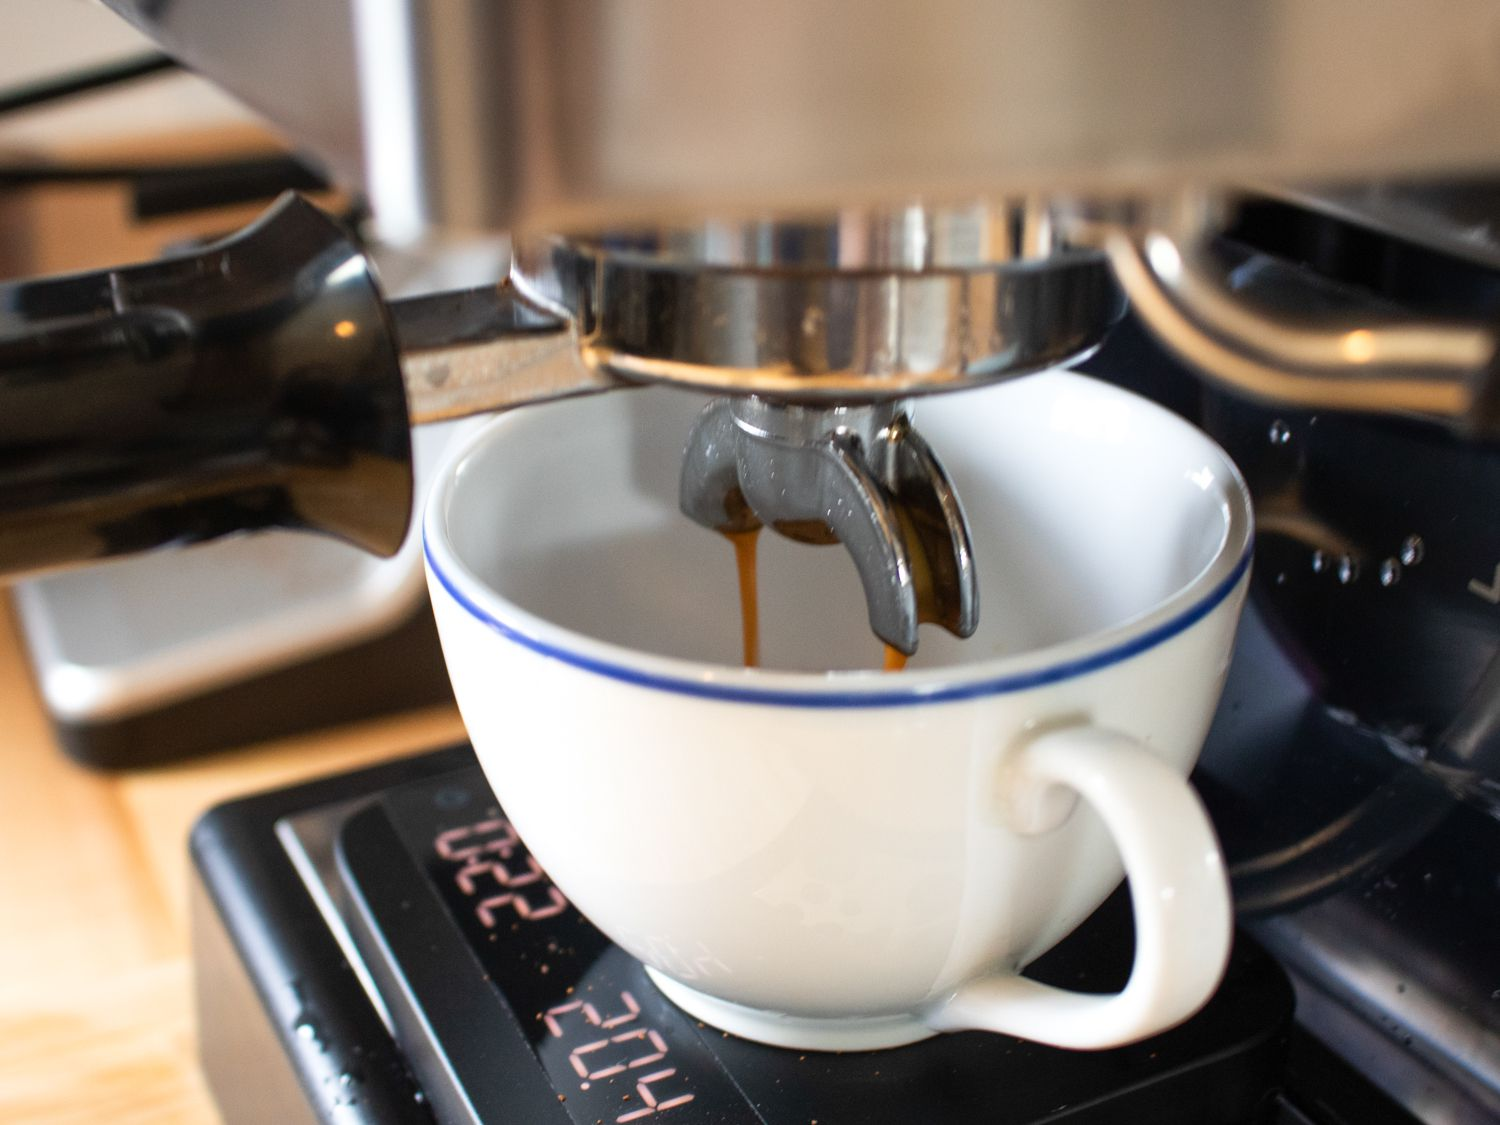 An espresso shot being pulled from the Gaggia Classic Pro espresso machine